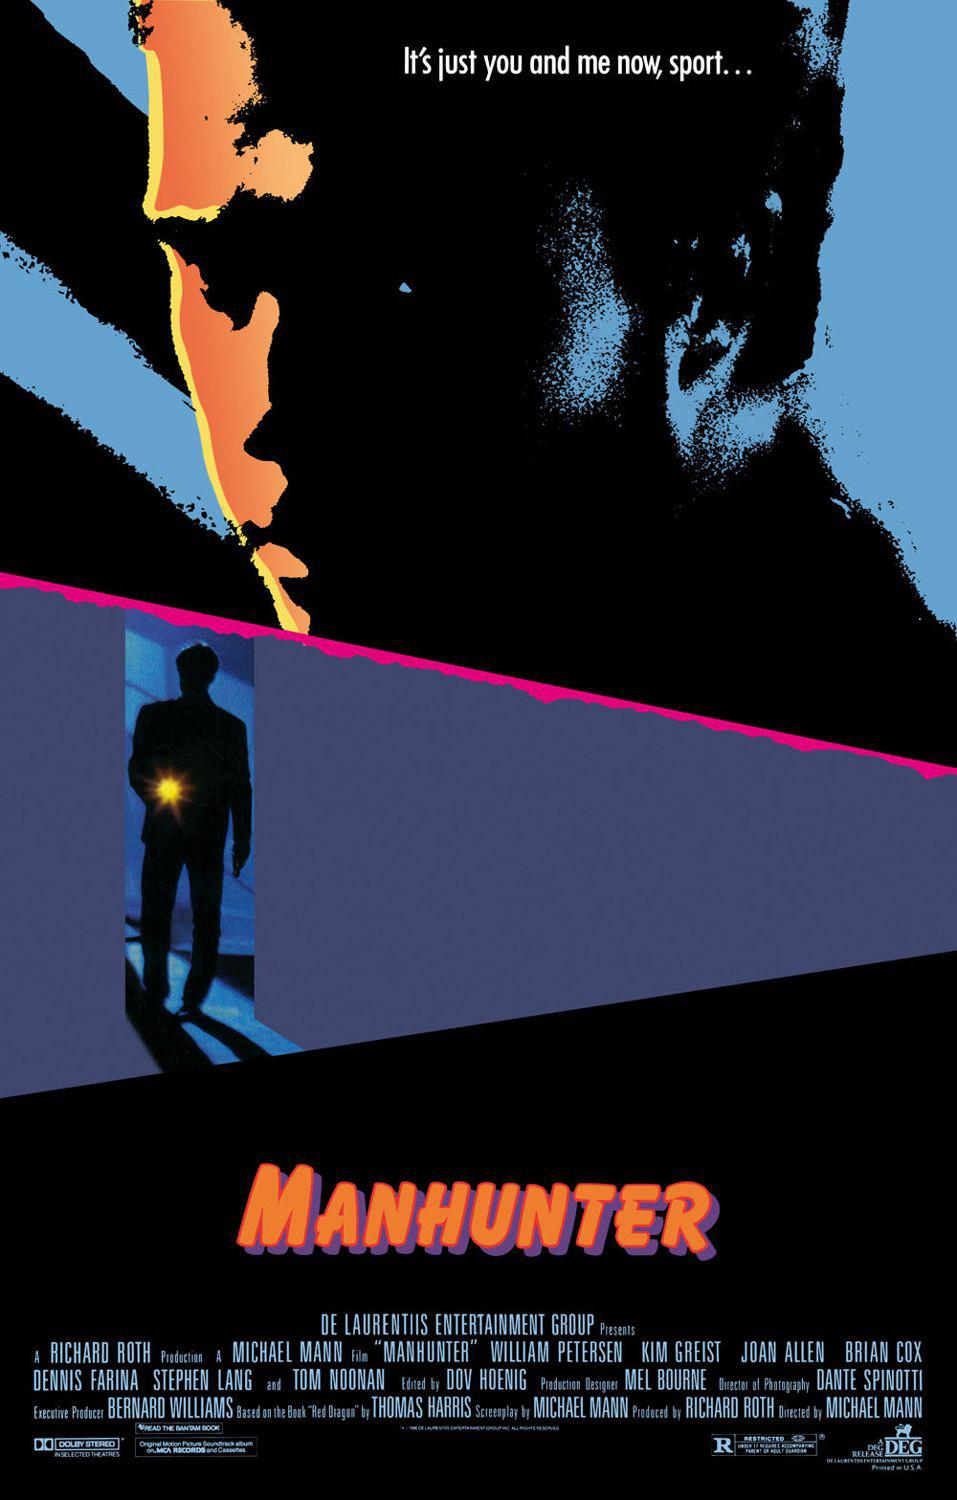 http://obxe.files.wordpress.com/2013/04/manhunter-poster.jpg